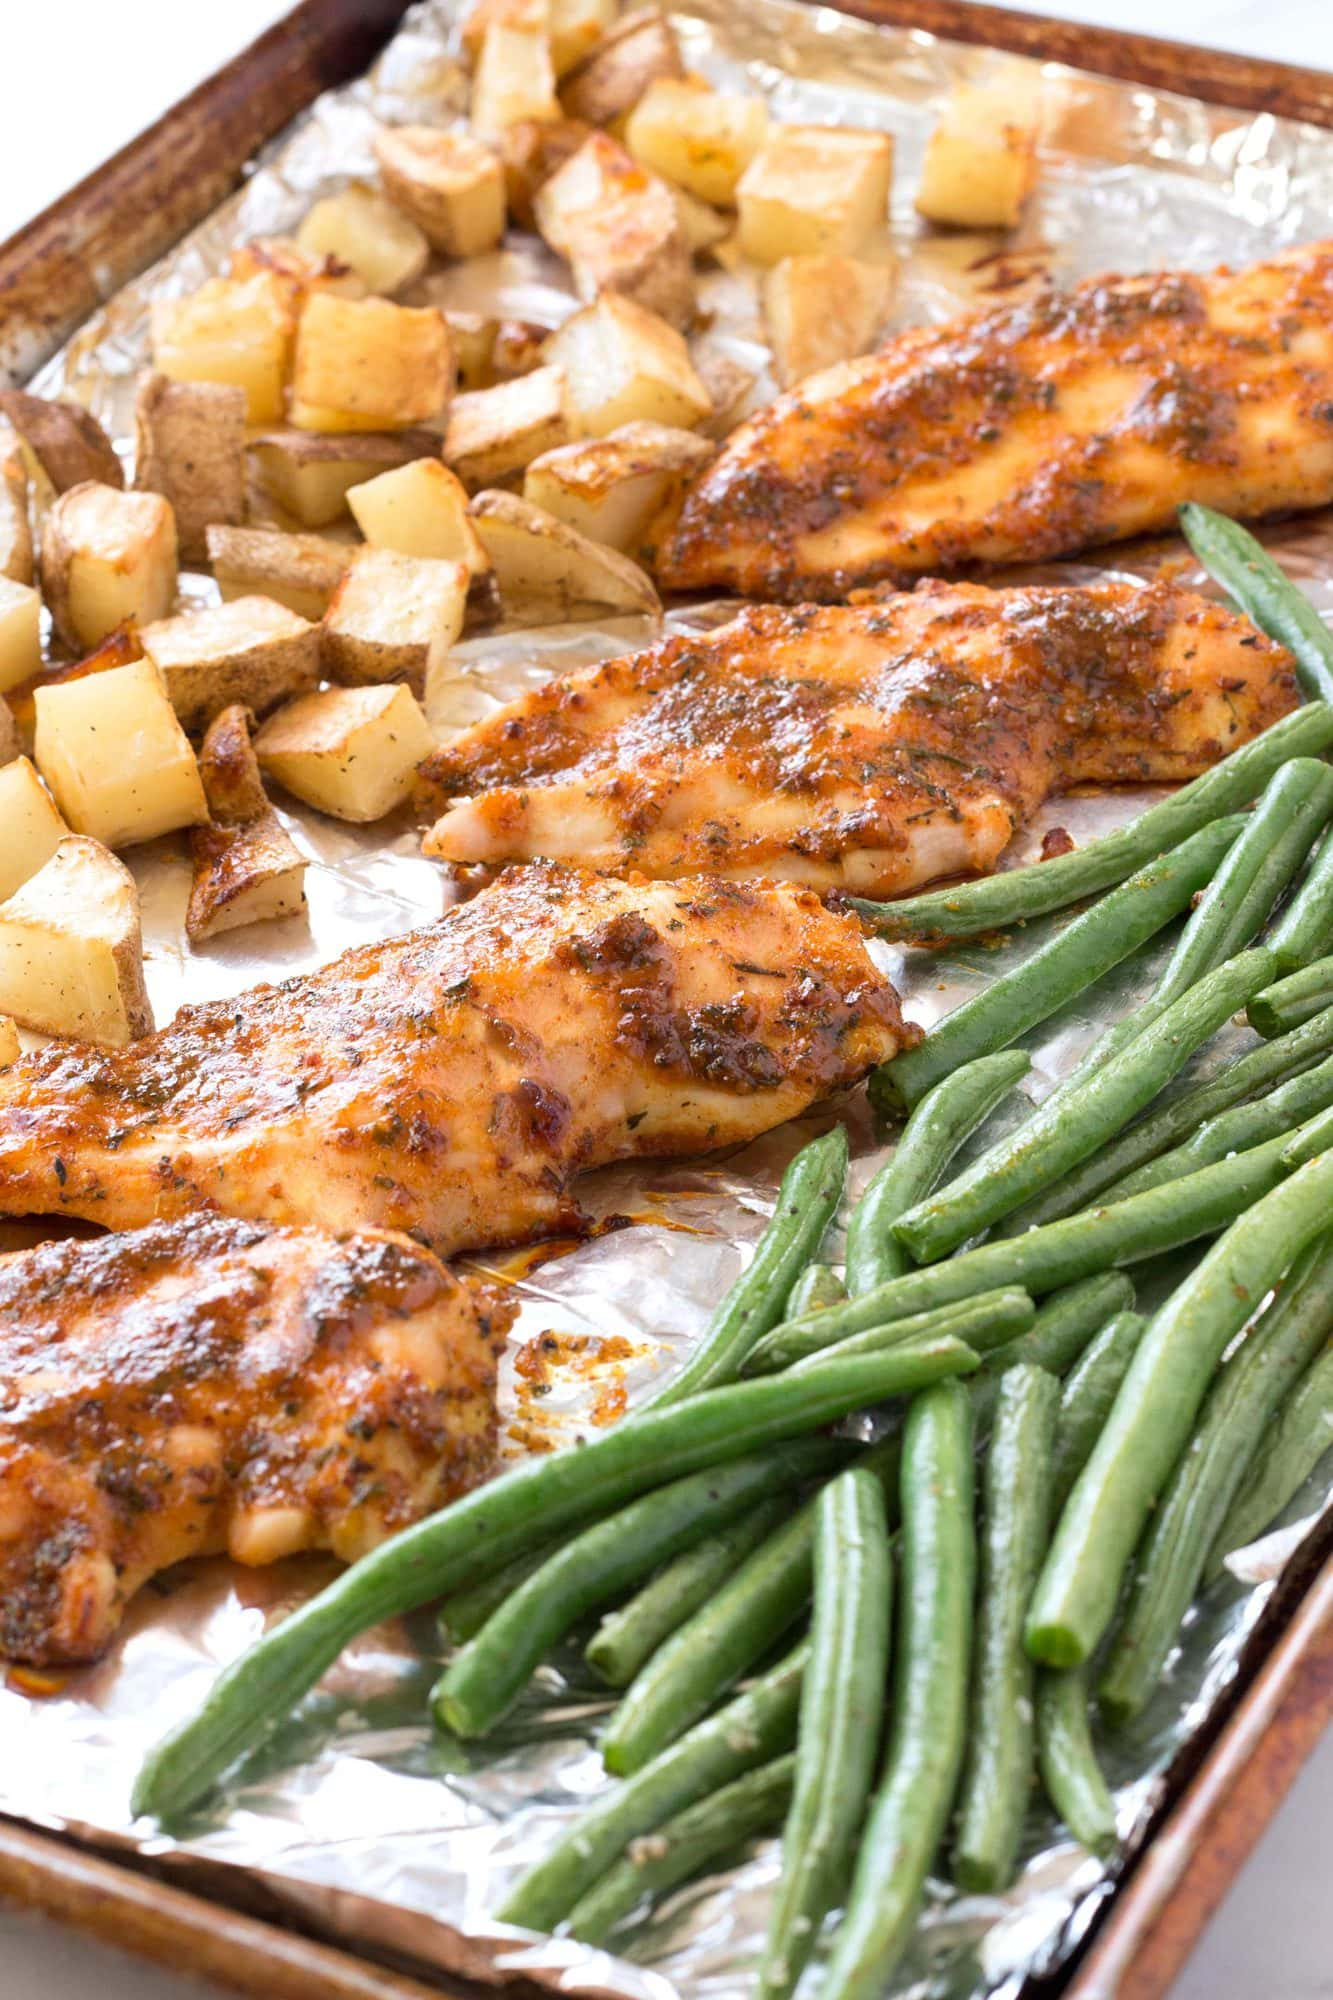 Honey Mustard Chicken, green beans, and potatoes on a sheet pan.